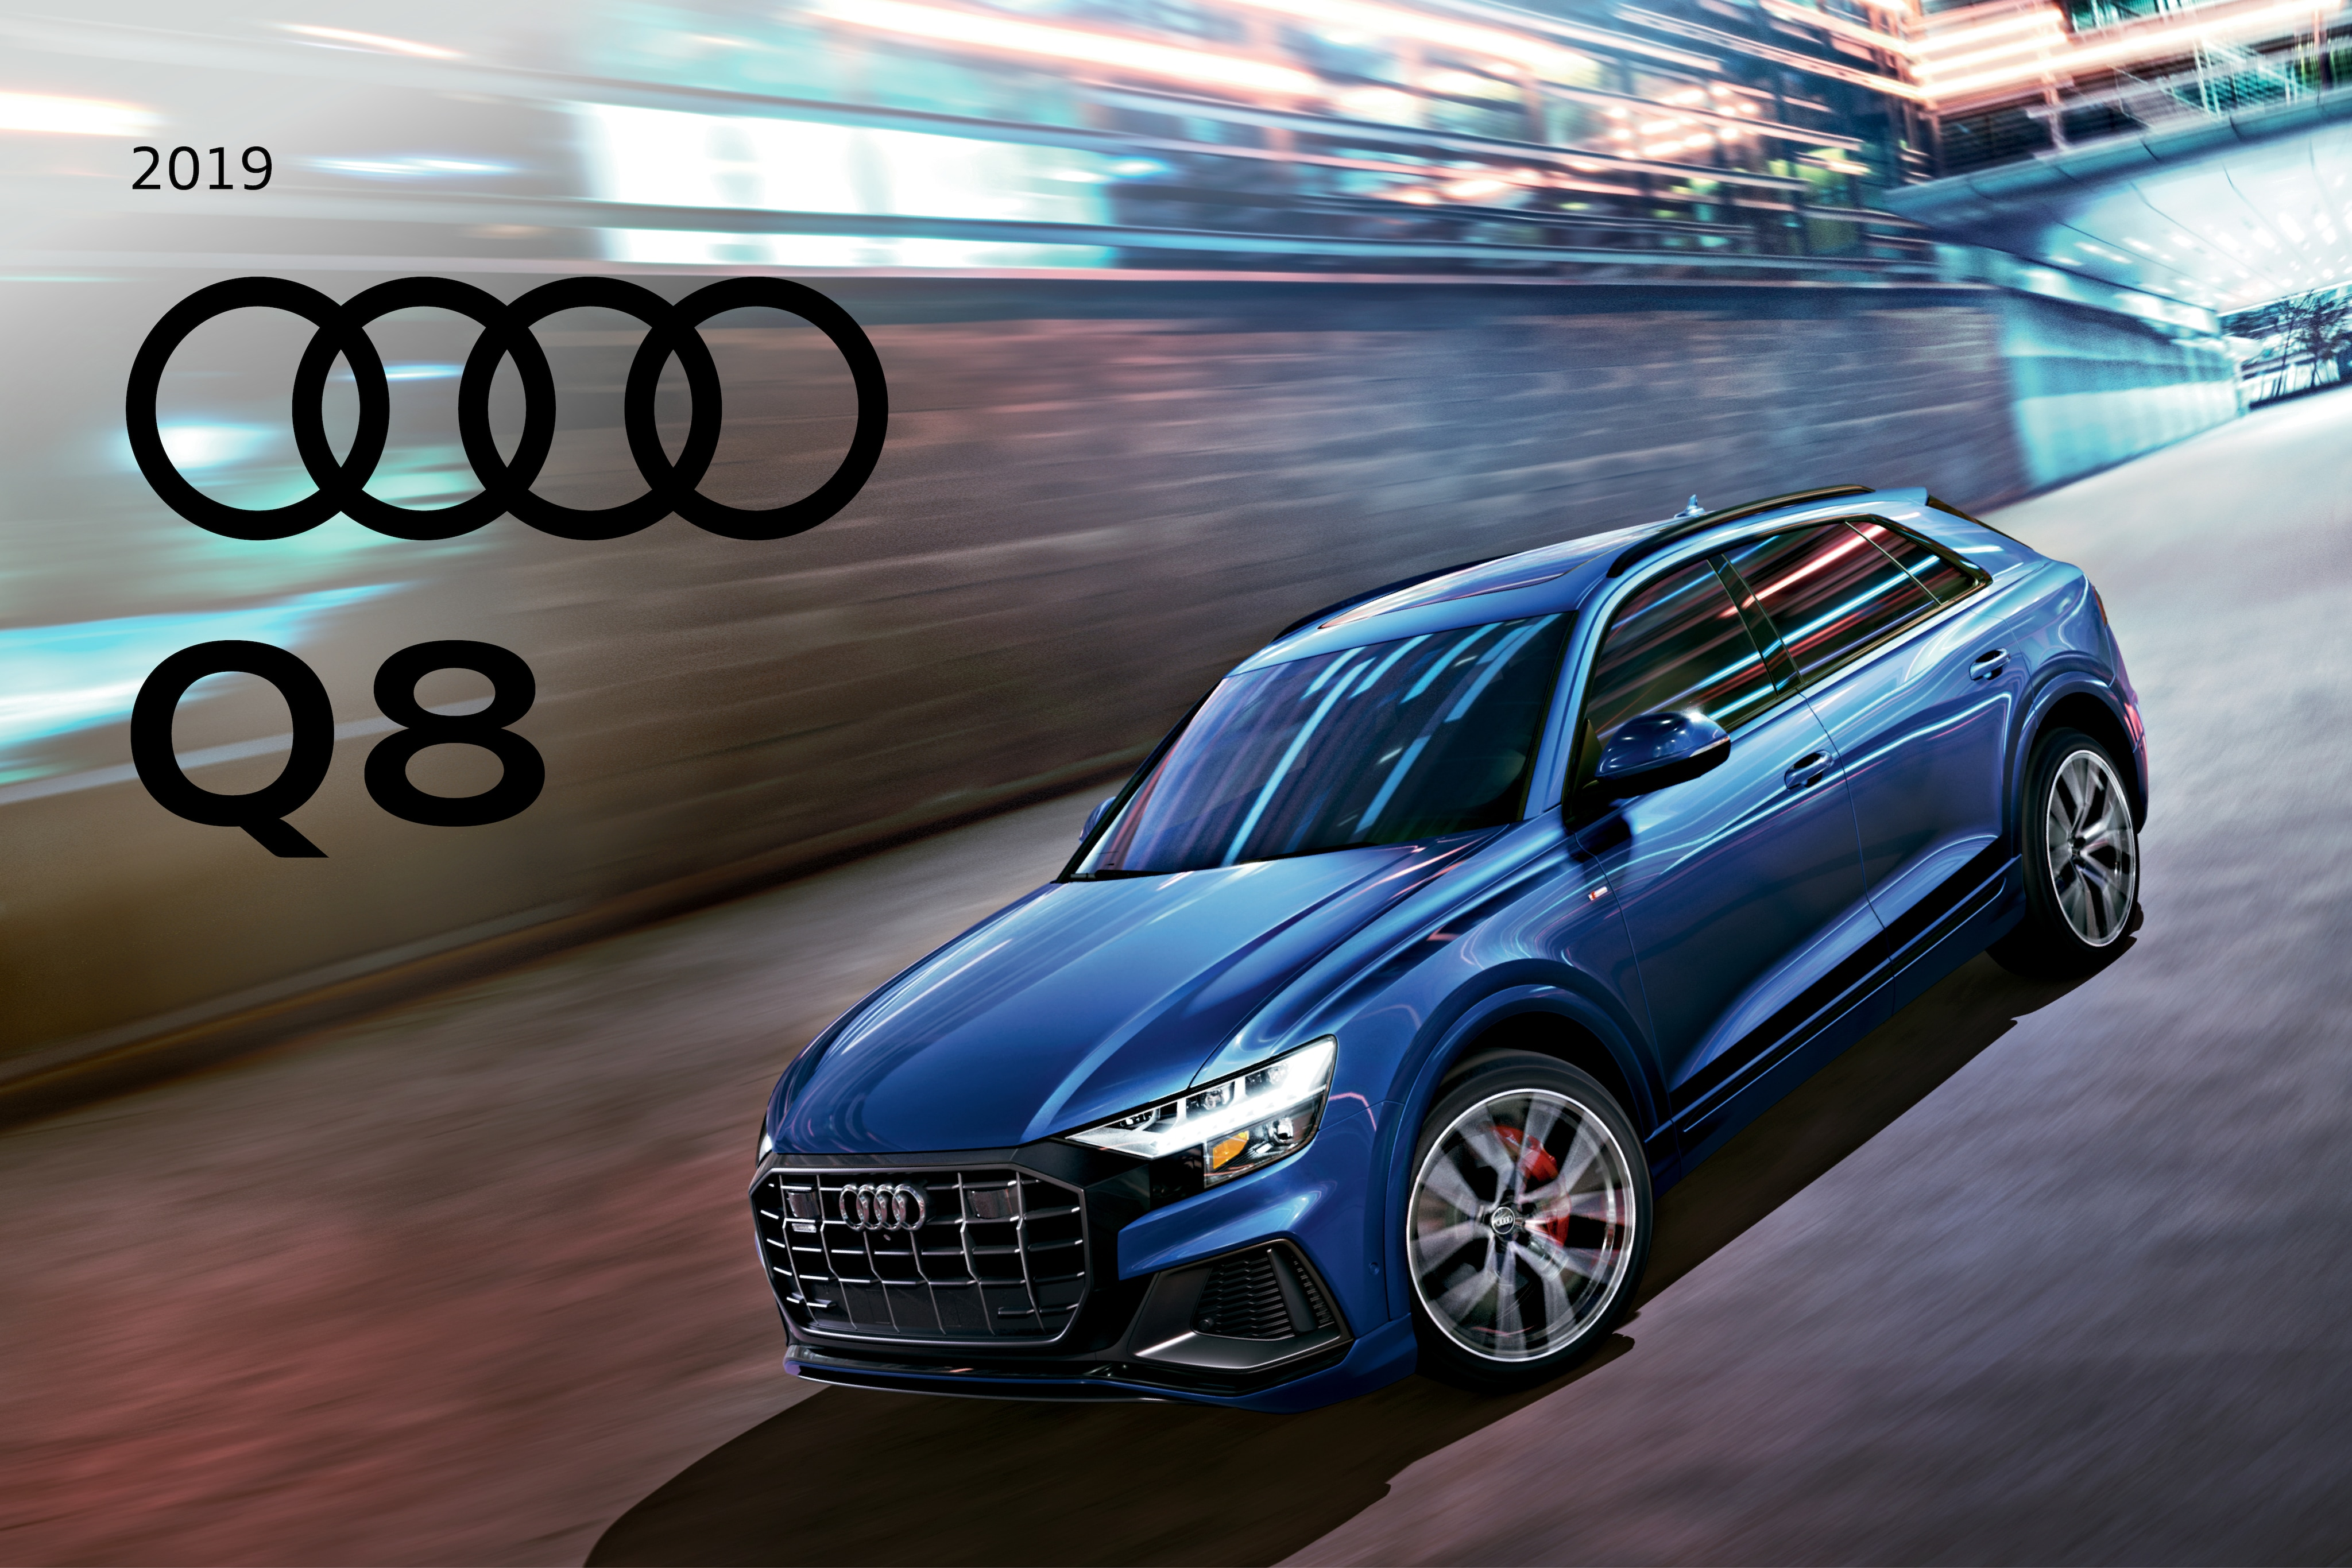 2019 Audi Q8 for sale in Colorado Springs